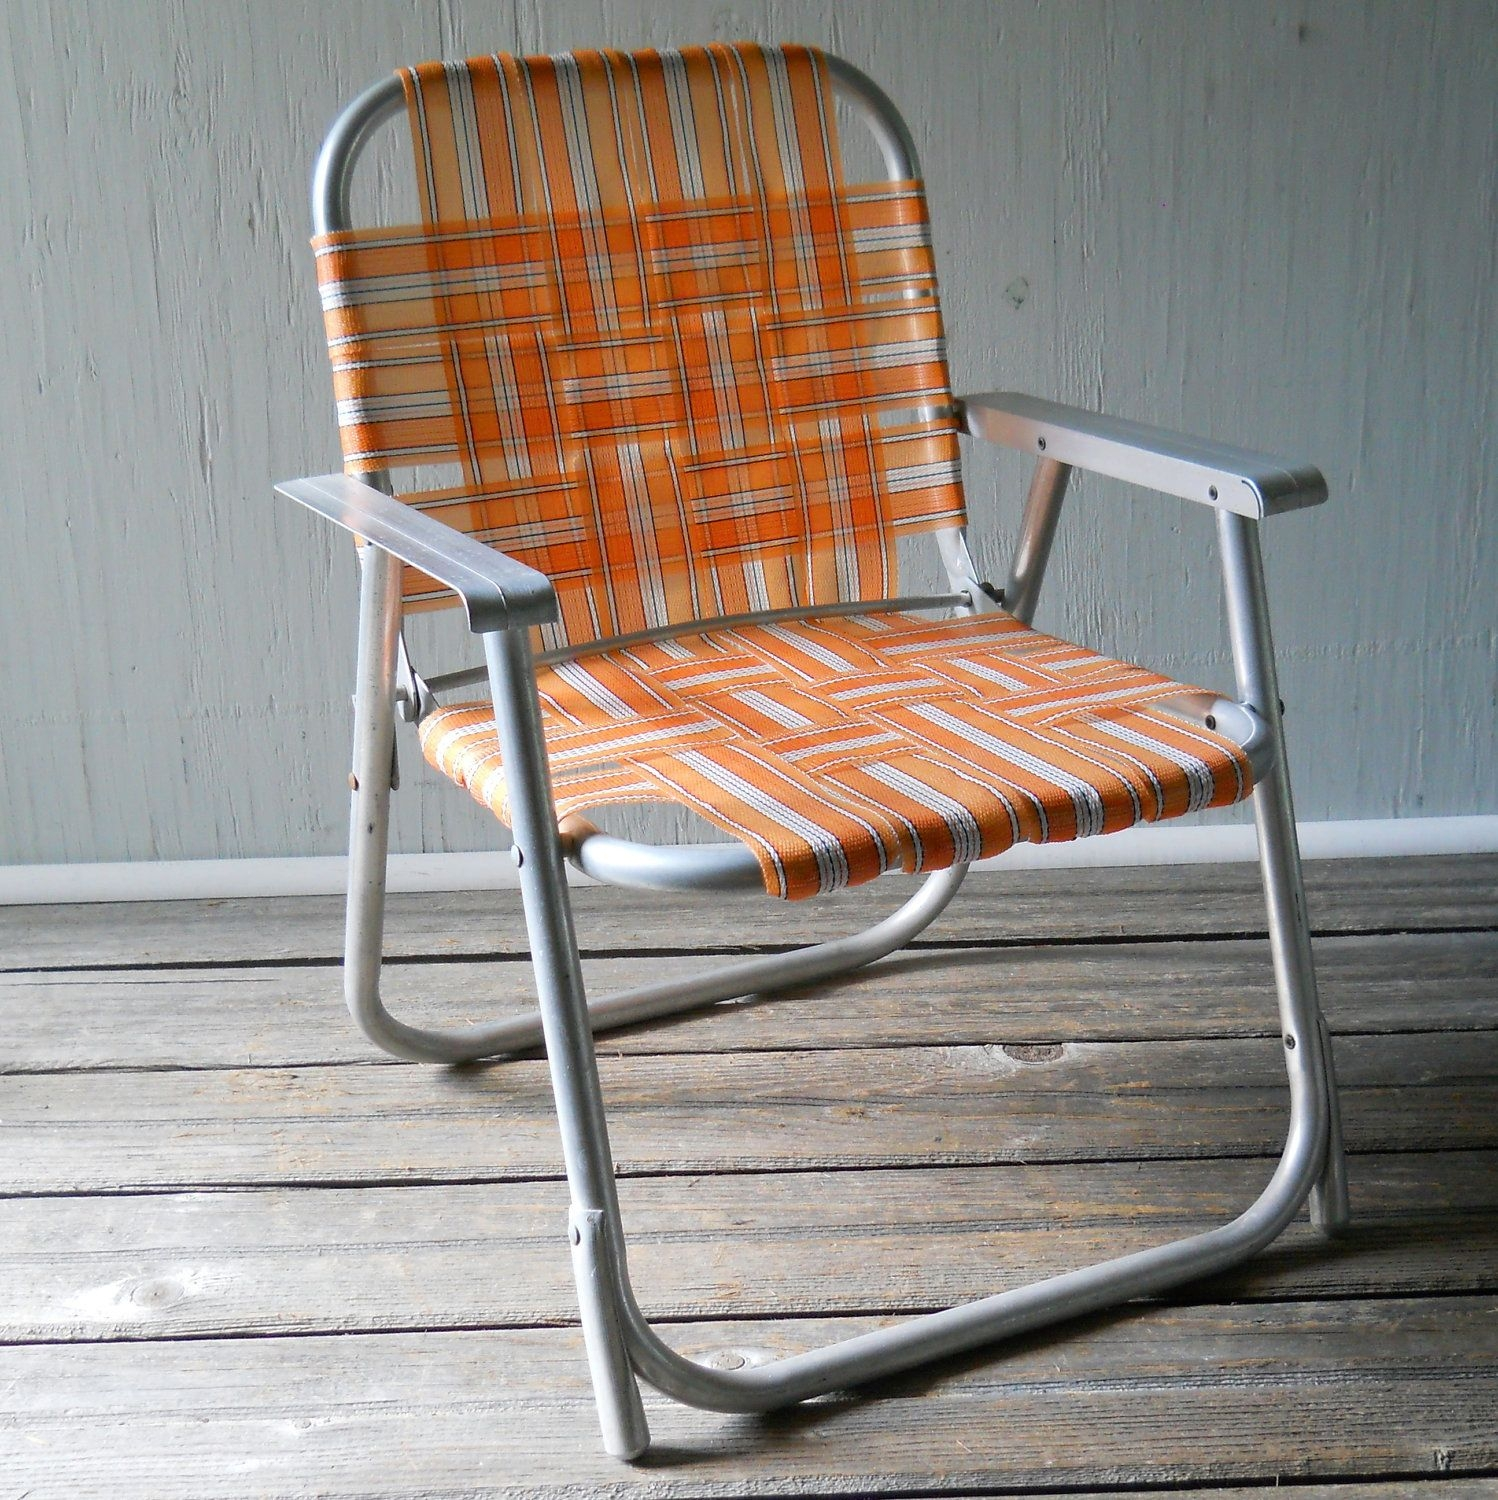 vintage lawn chair desk images folding chairs ideas on foter childs